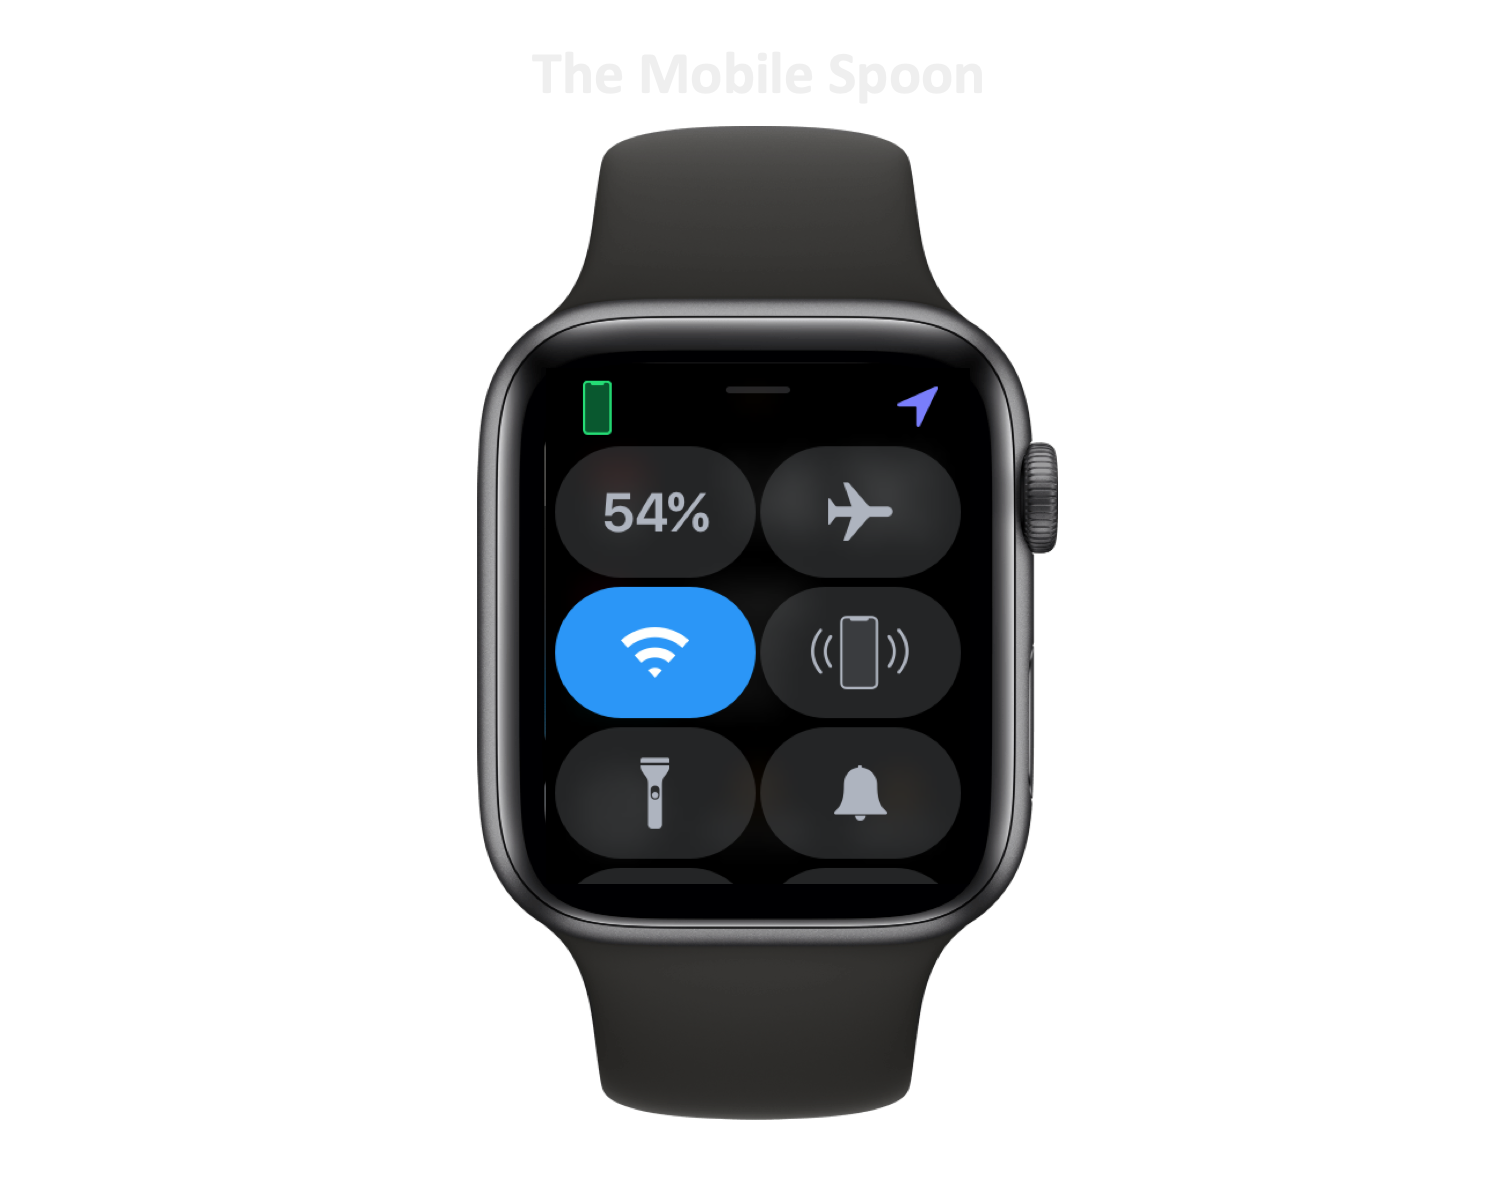 Apple Watch Control Center - current design